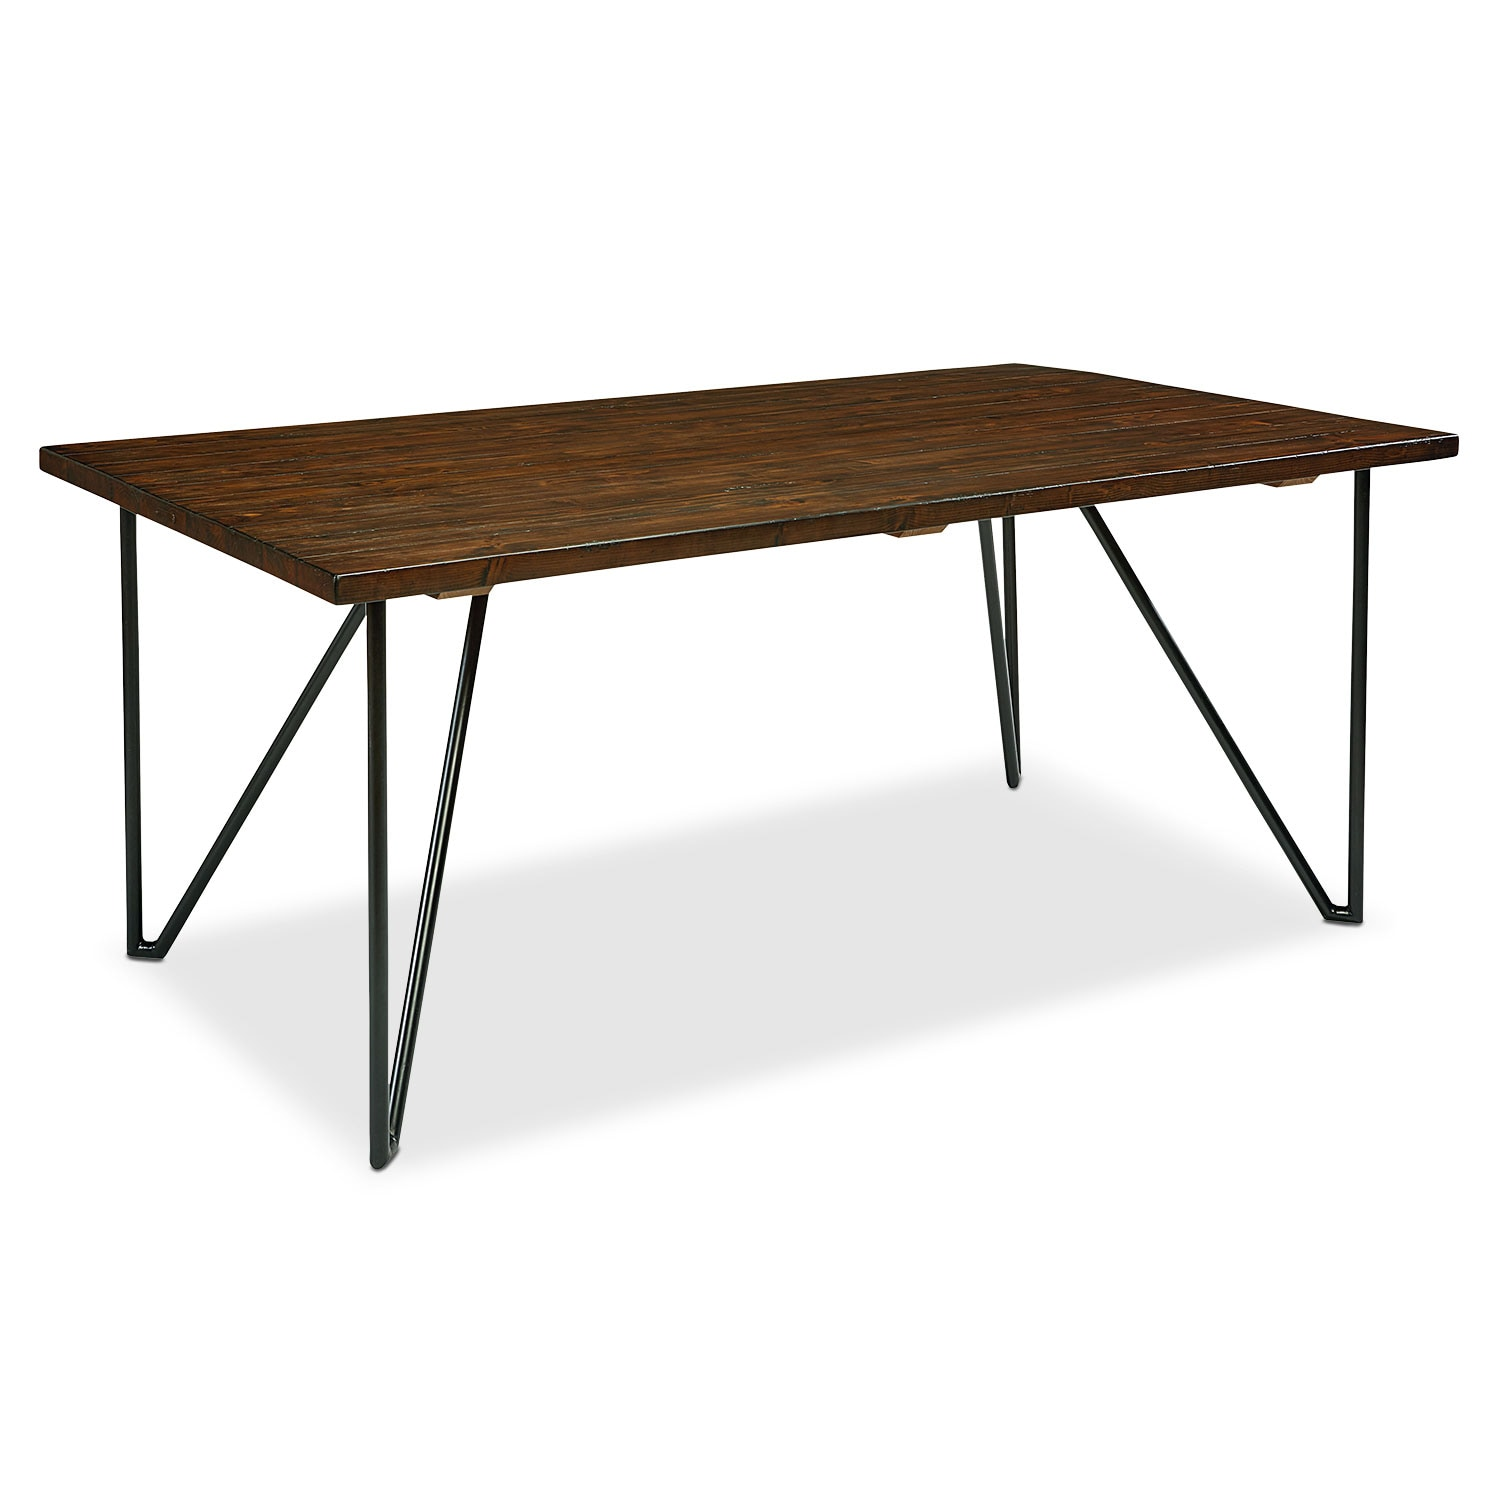 Dining Room Furniture - 8' Boho Hairpin Dining Table